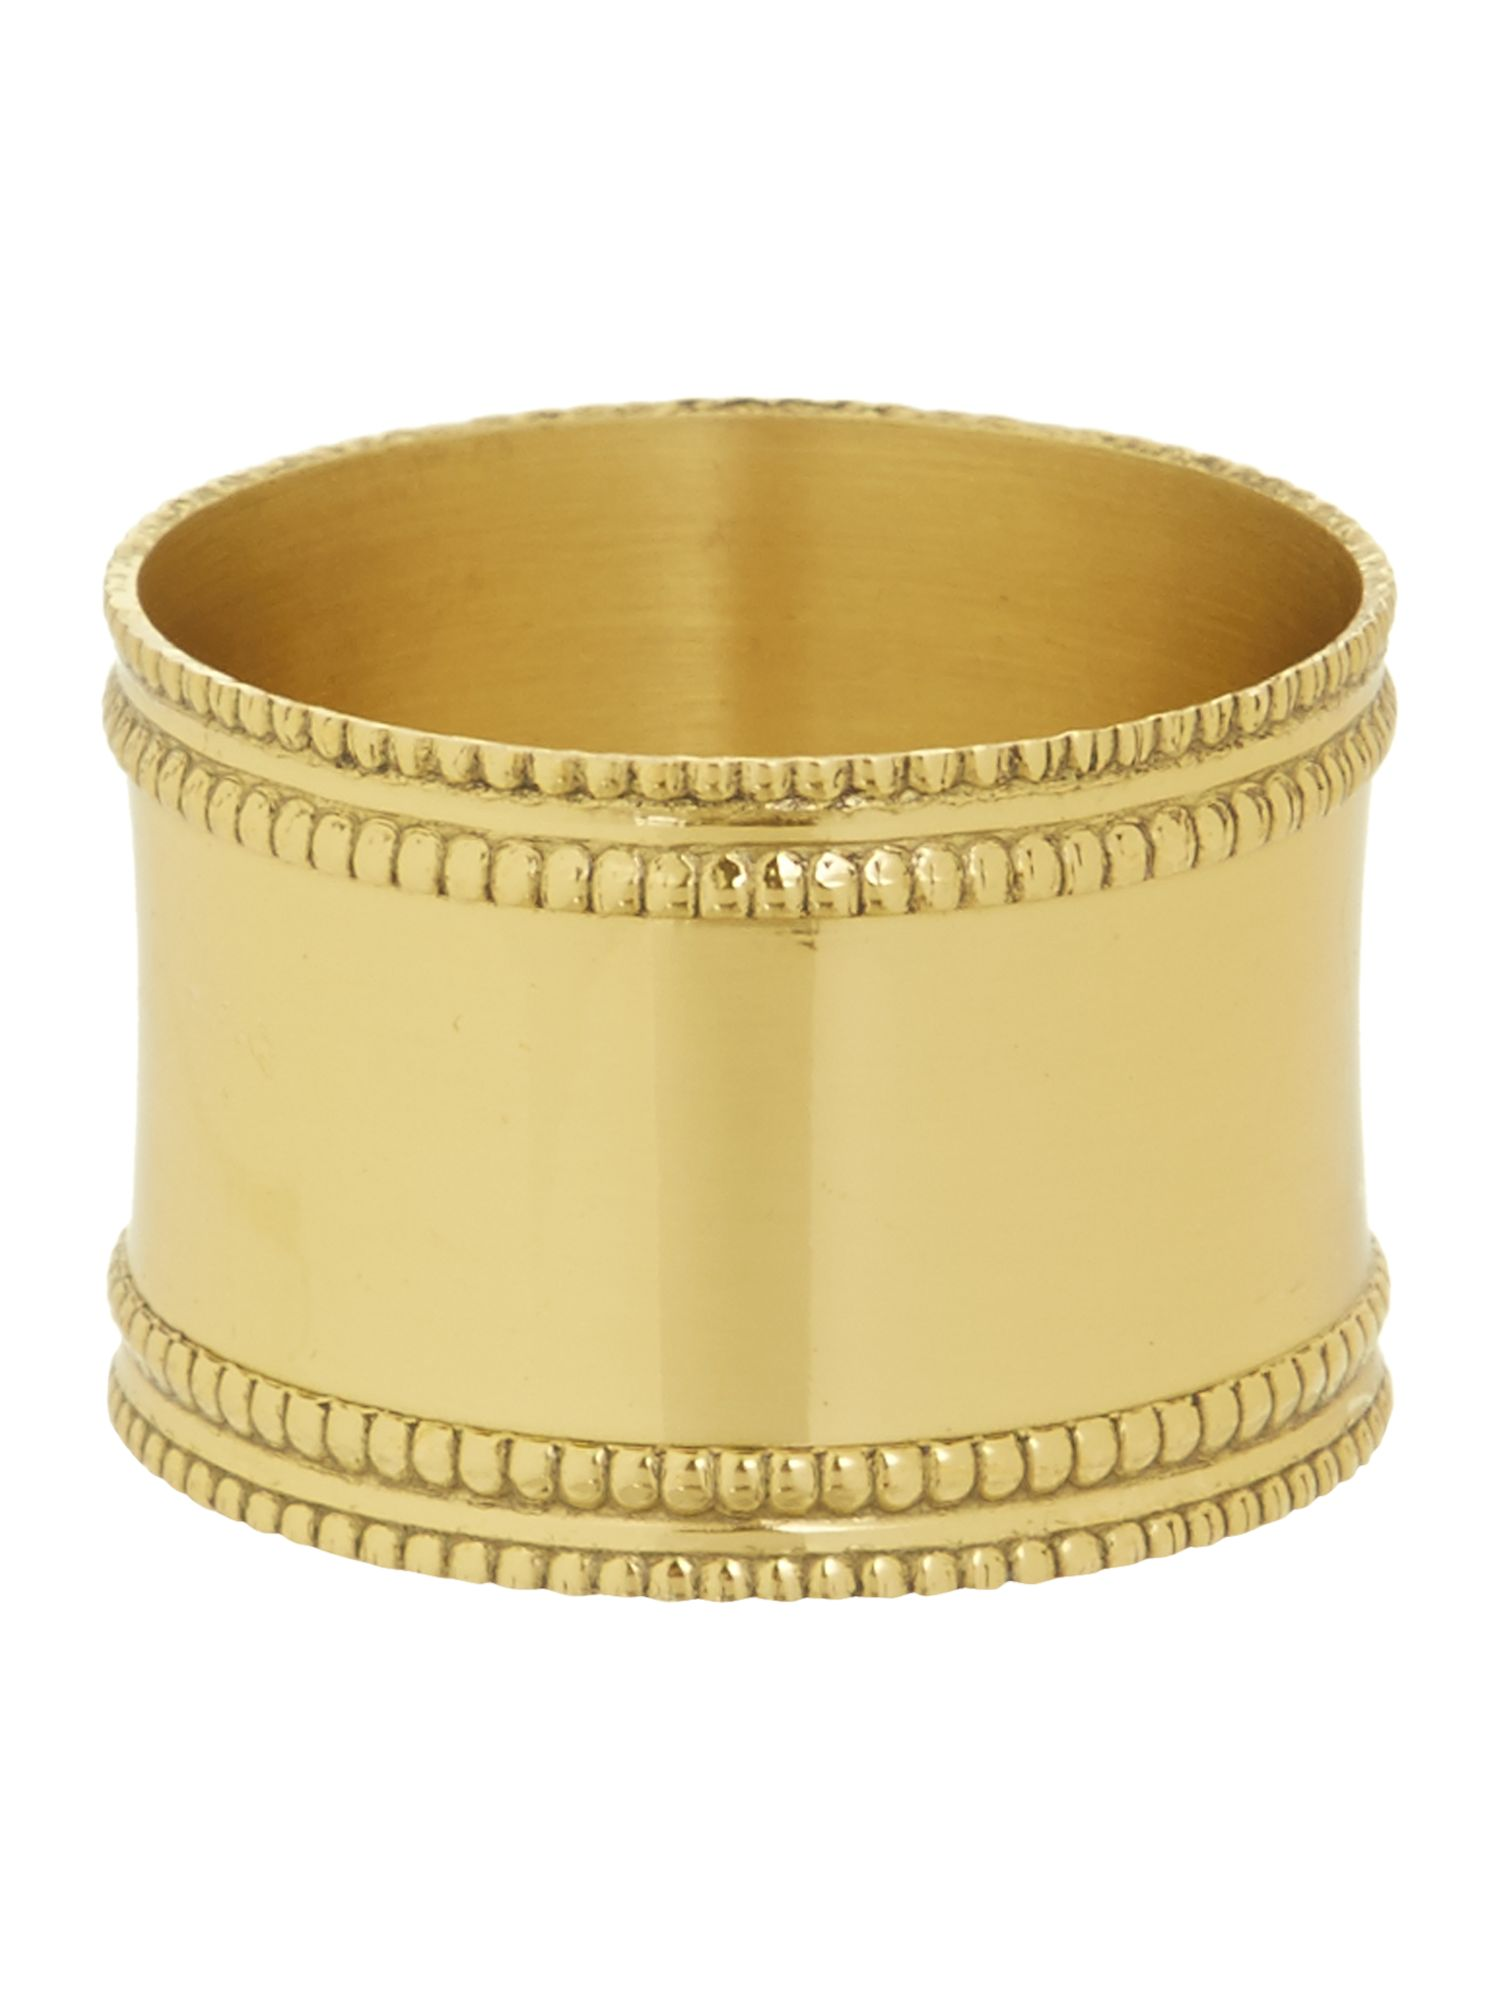 Gold band napkin ring set of 4